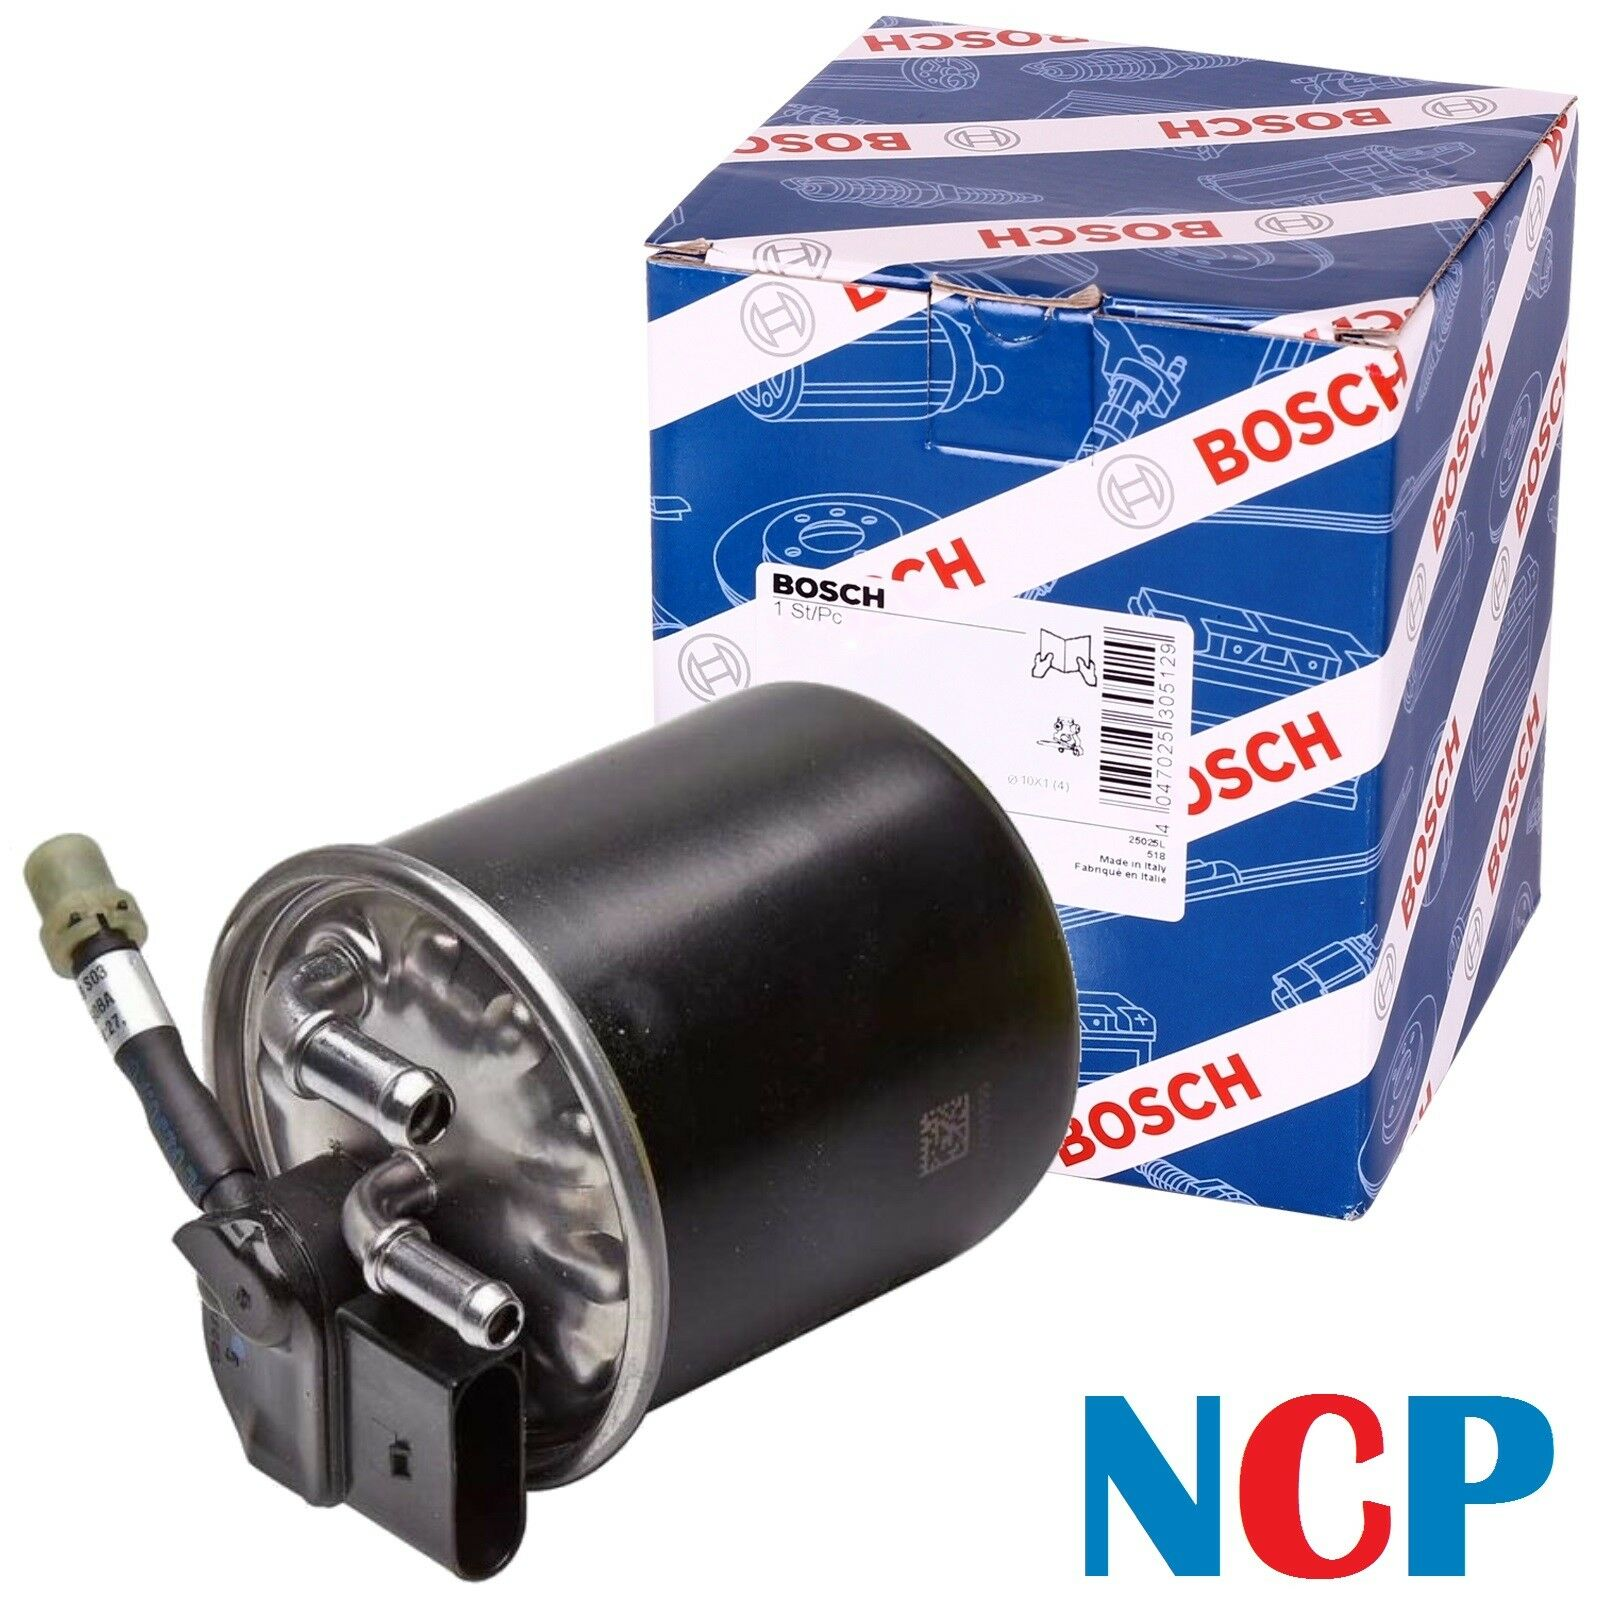 Mercedes E C G Ml S Class Fuel Filter With Sensor Oe Part 6510901652 2000 Ml320 1 Of 1free Shipping